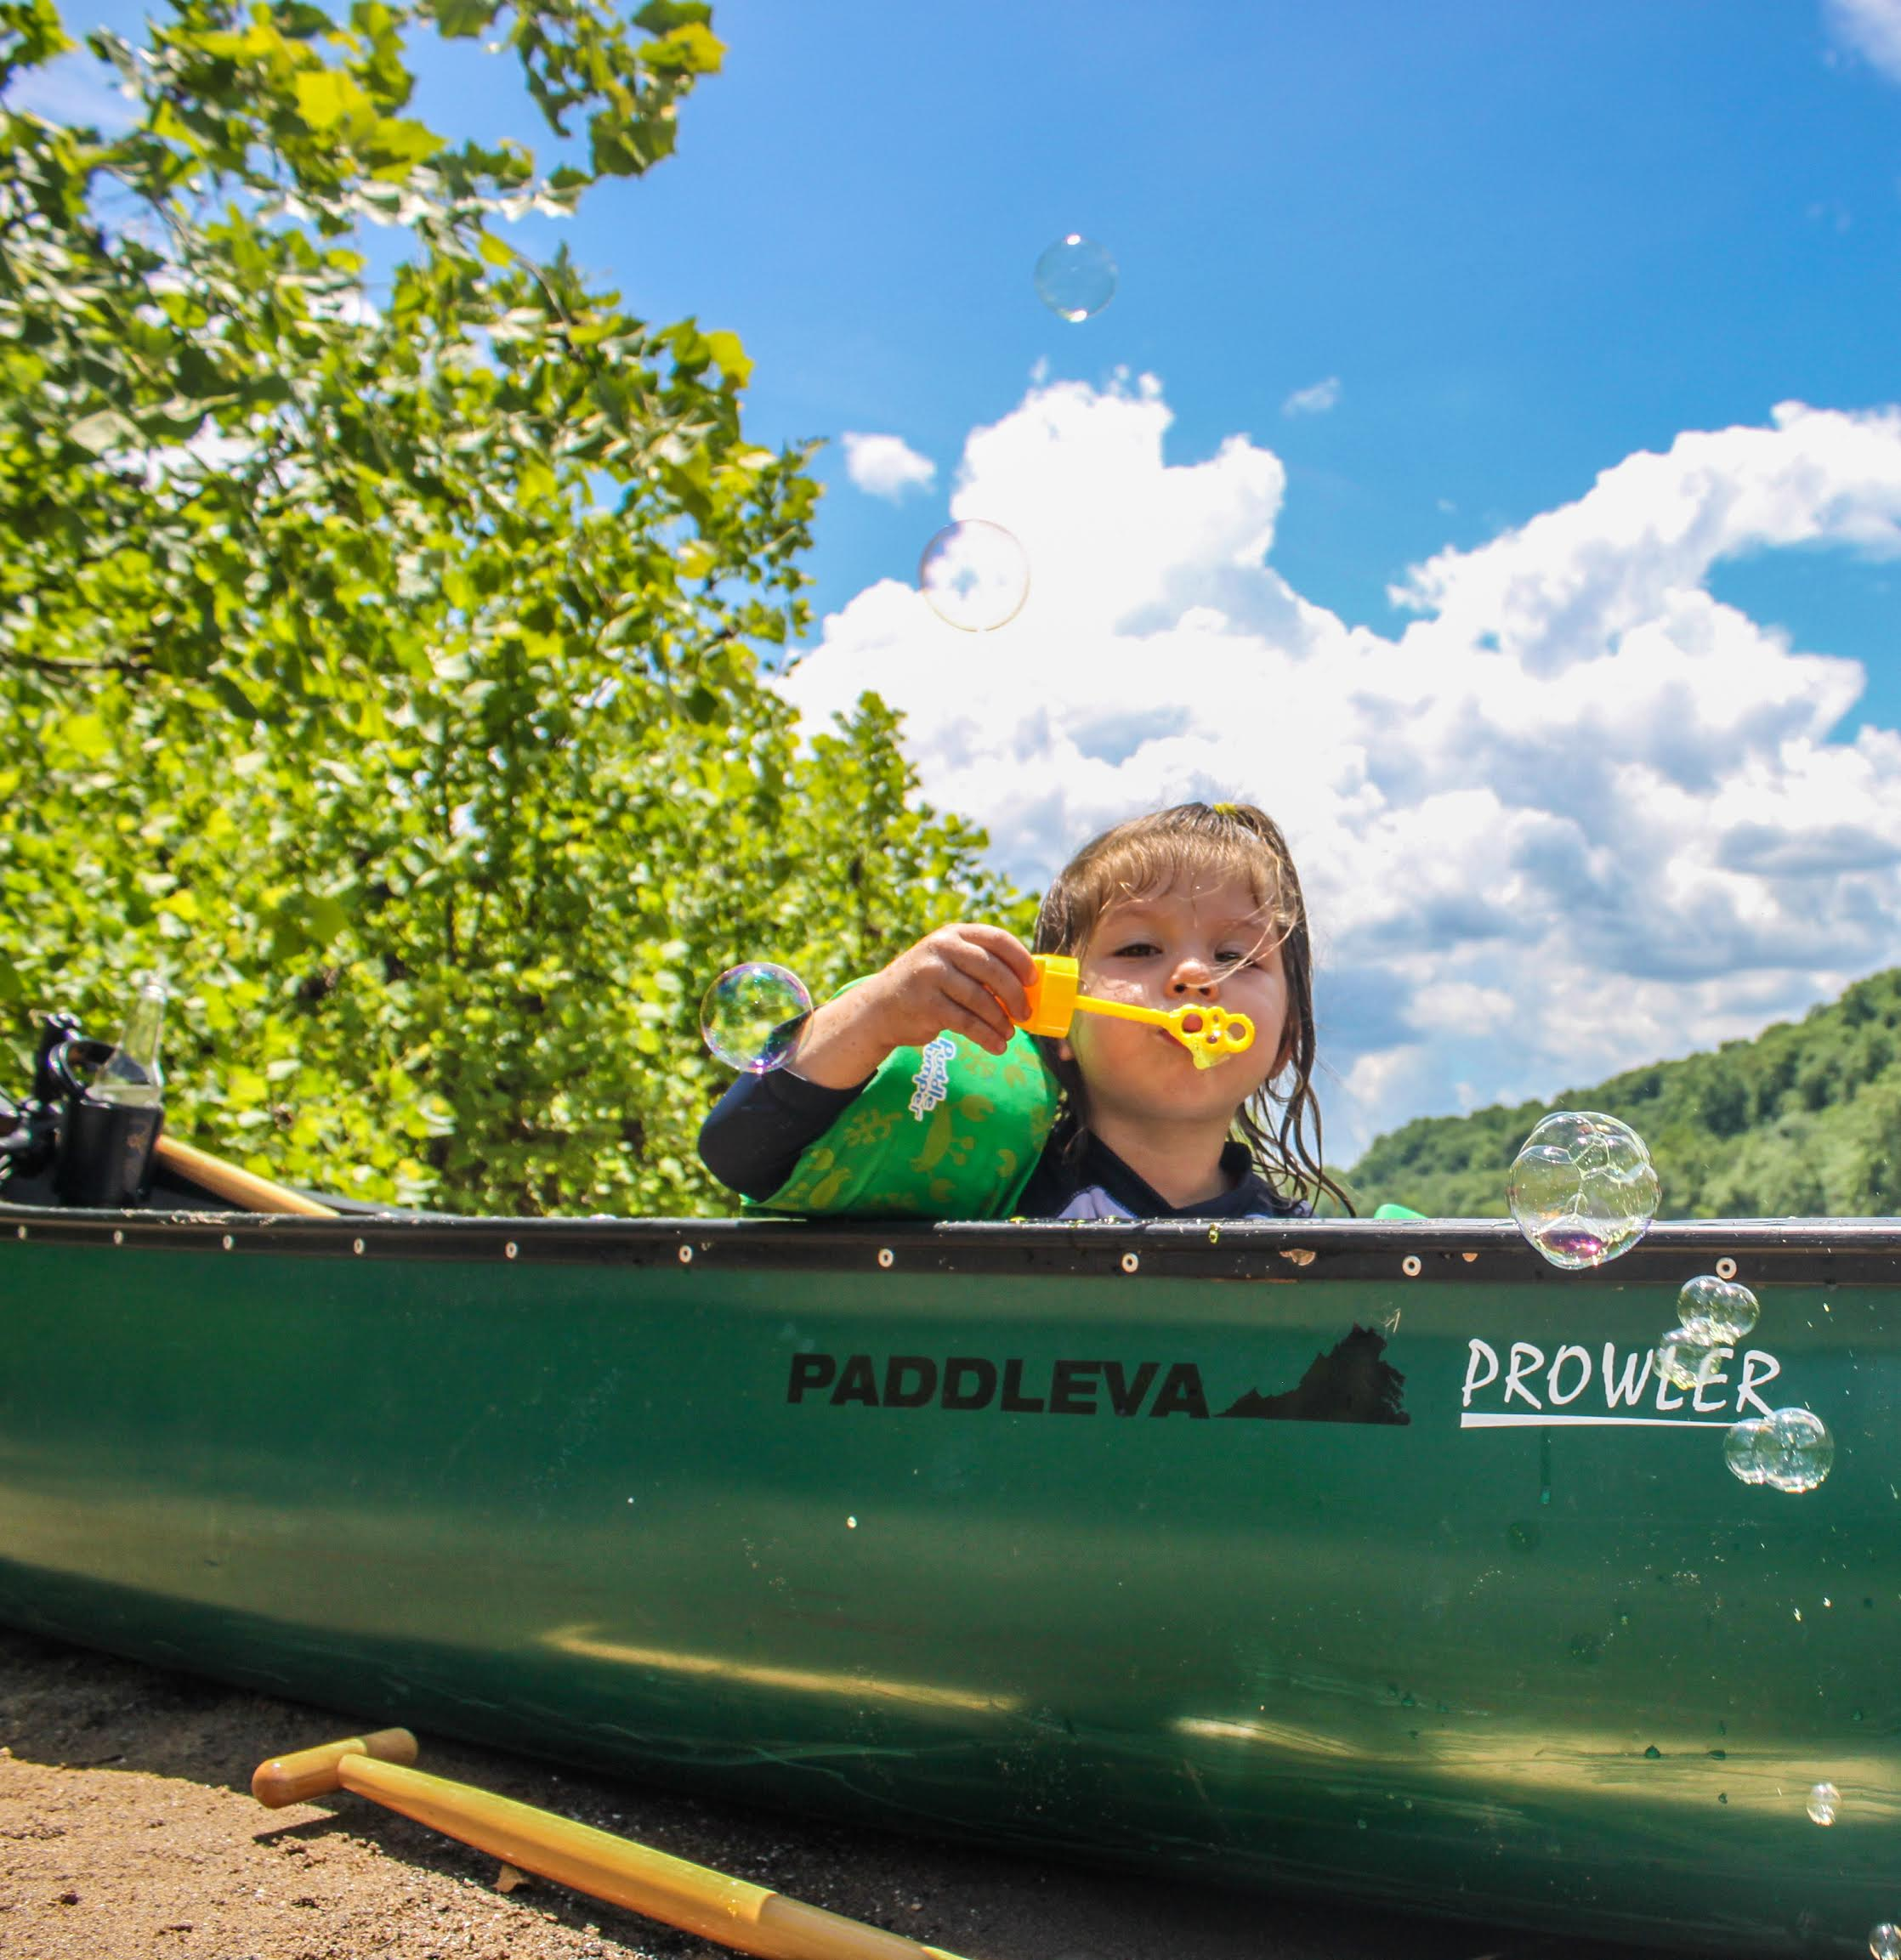 Breaking Up The Paddle And Tiring Kids Out With Some Good Ole Fashioned River Play Is Essential